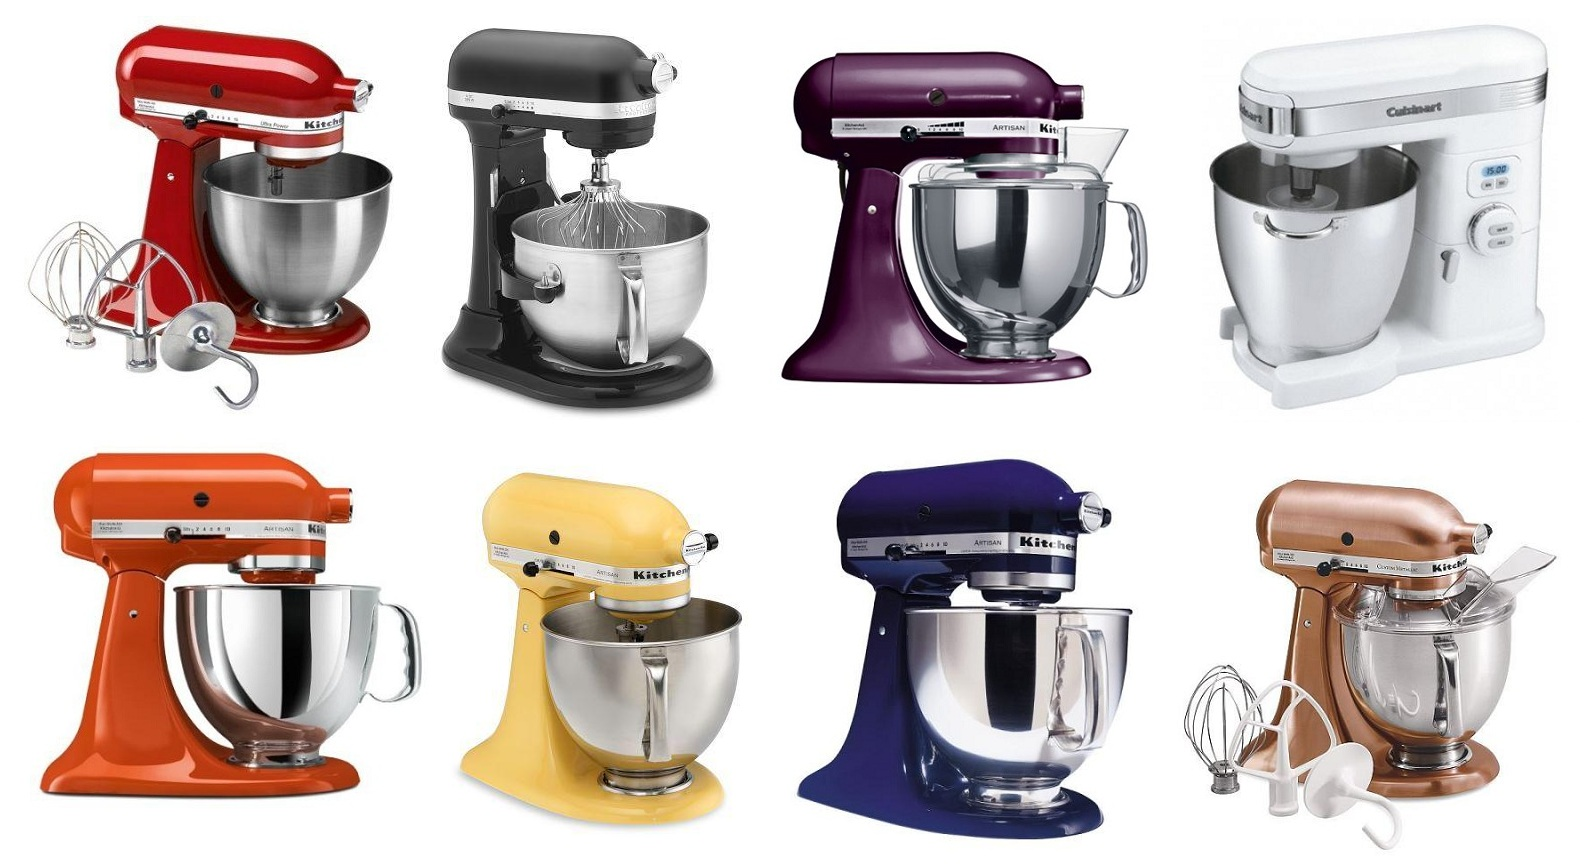 Mixer kitchenaid photo - 2